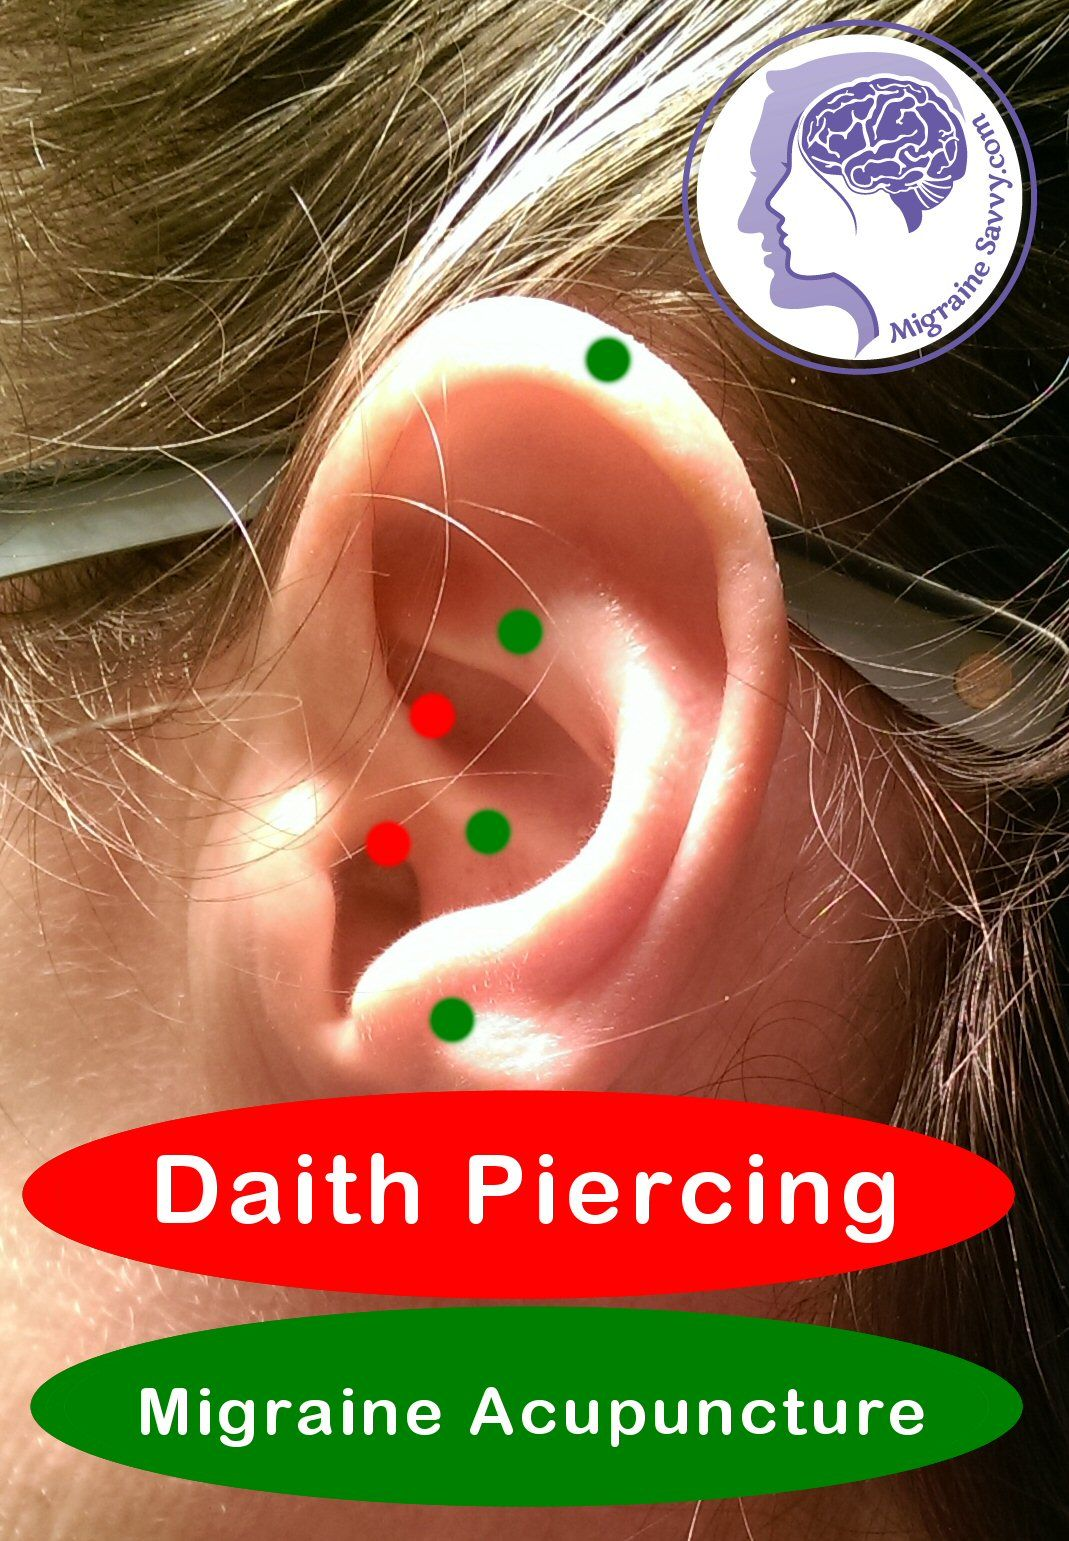 Bump after piercing  Daith piercing on Pinterest  Explore  ideas with Diath piercing